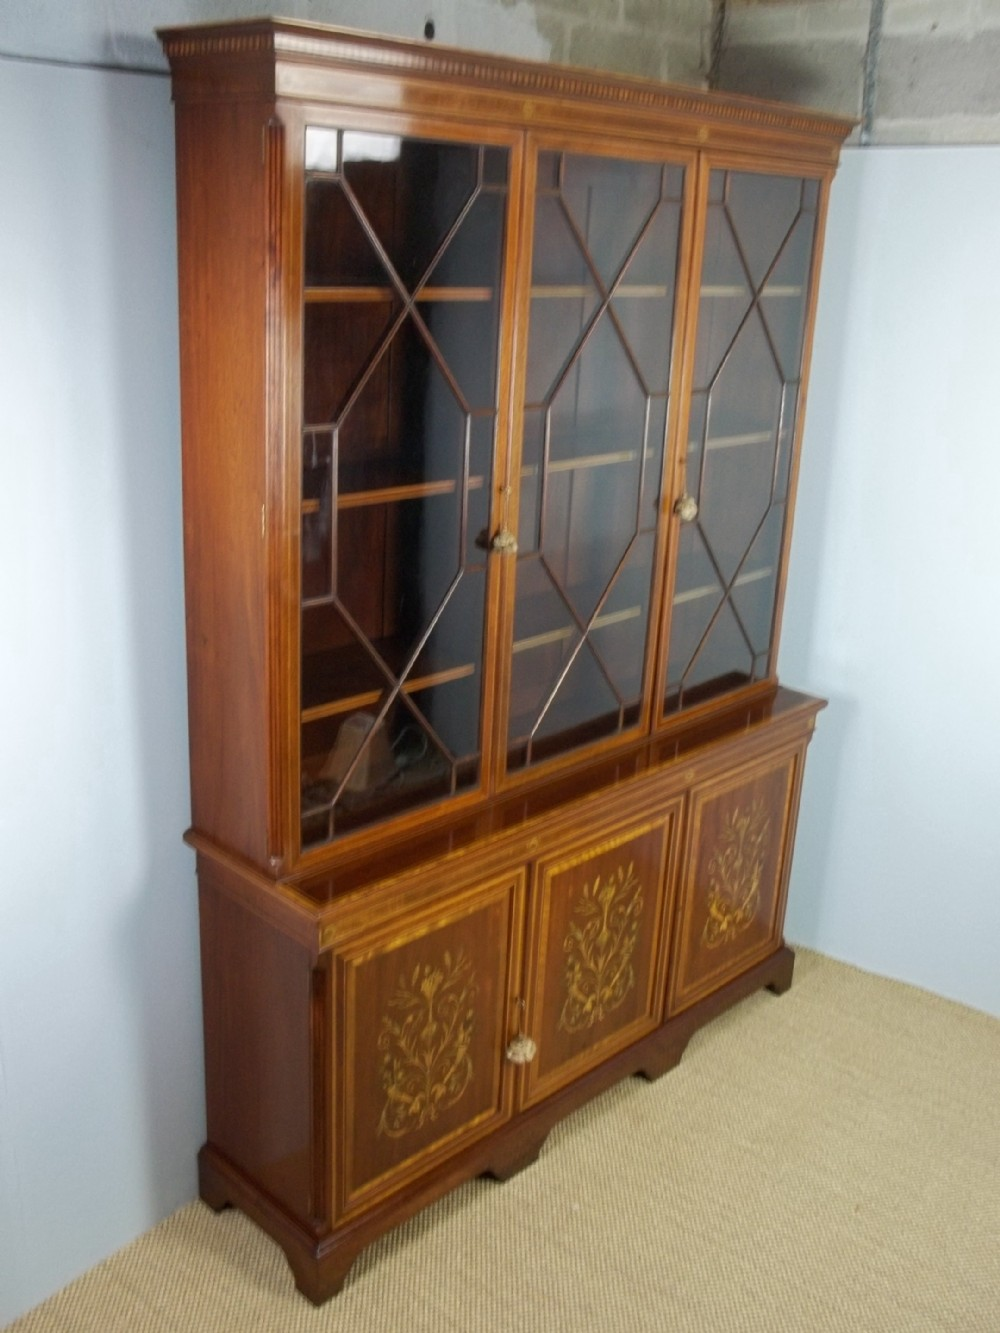 a large antique stamped edwards and roberts mahogany marquetry inlaid triple three door breakfront type bookcase display cabinet with adjustable open bookshelves c1895